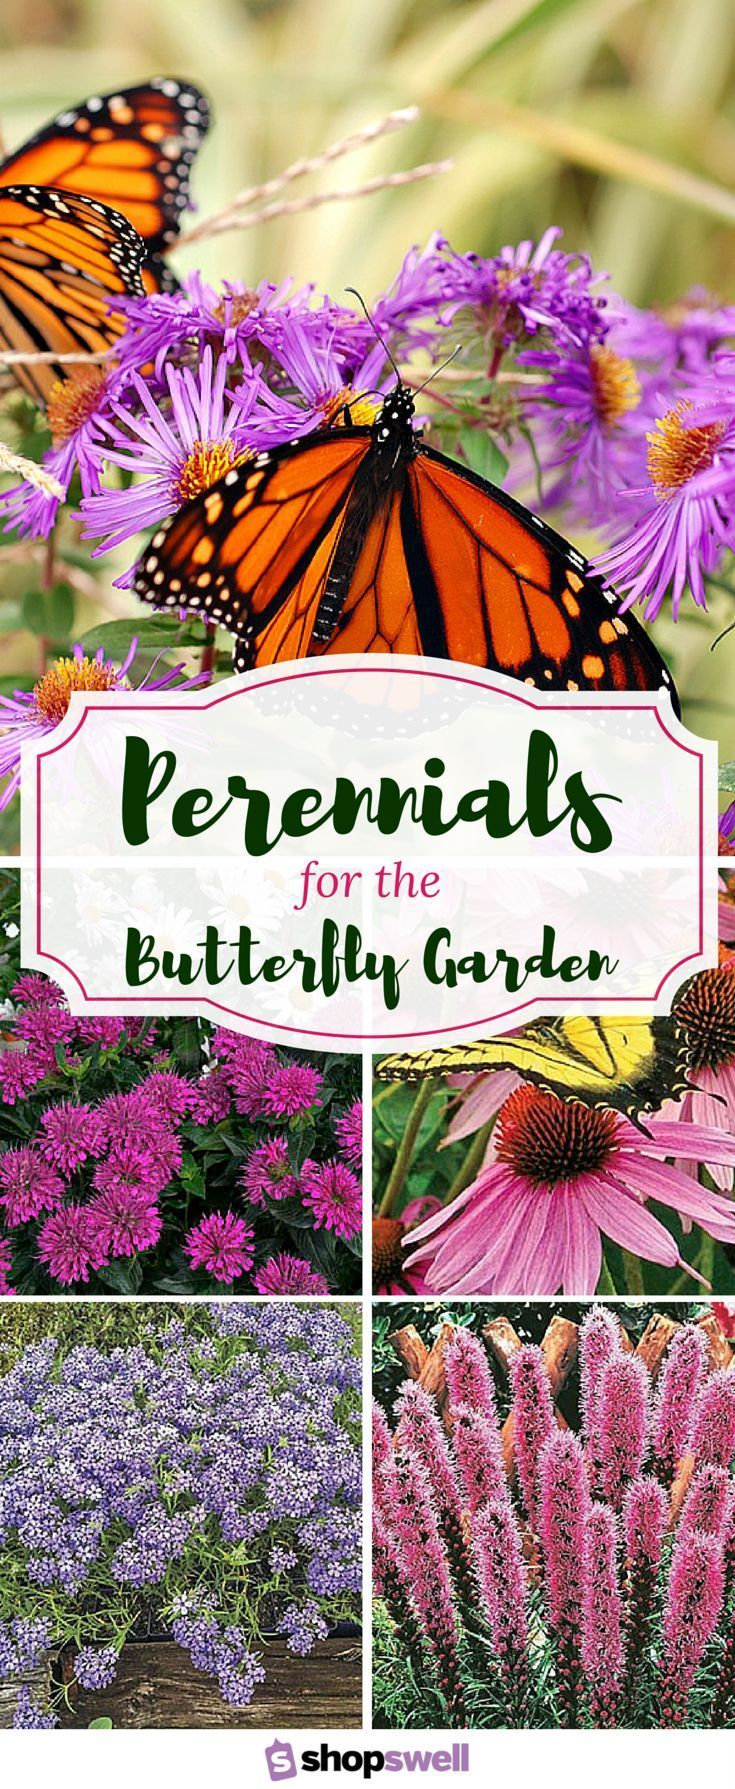 17 Best 1000 images about Green Thumb Garden Essentials on Pinterest